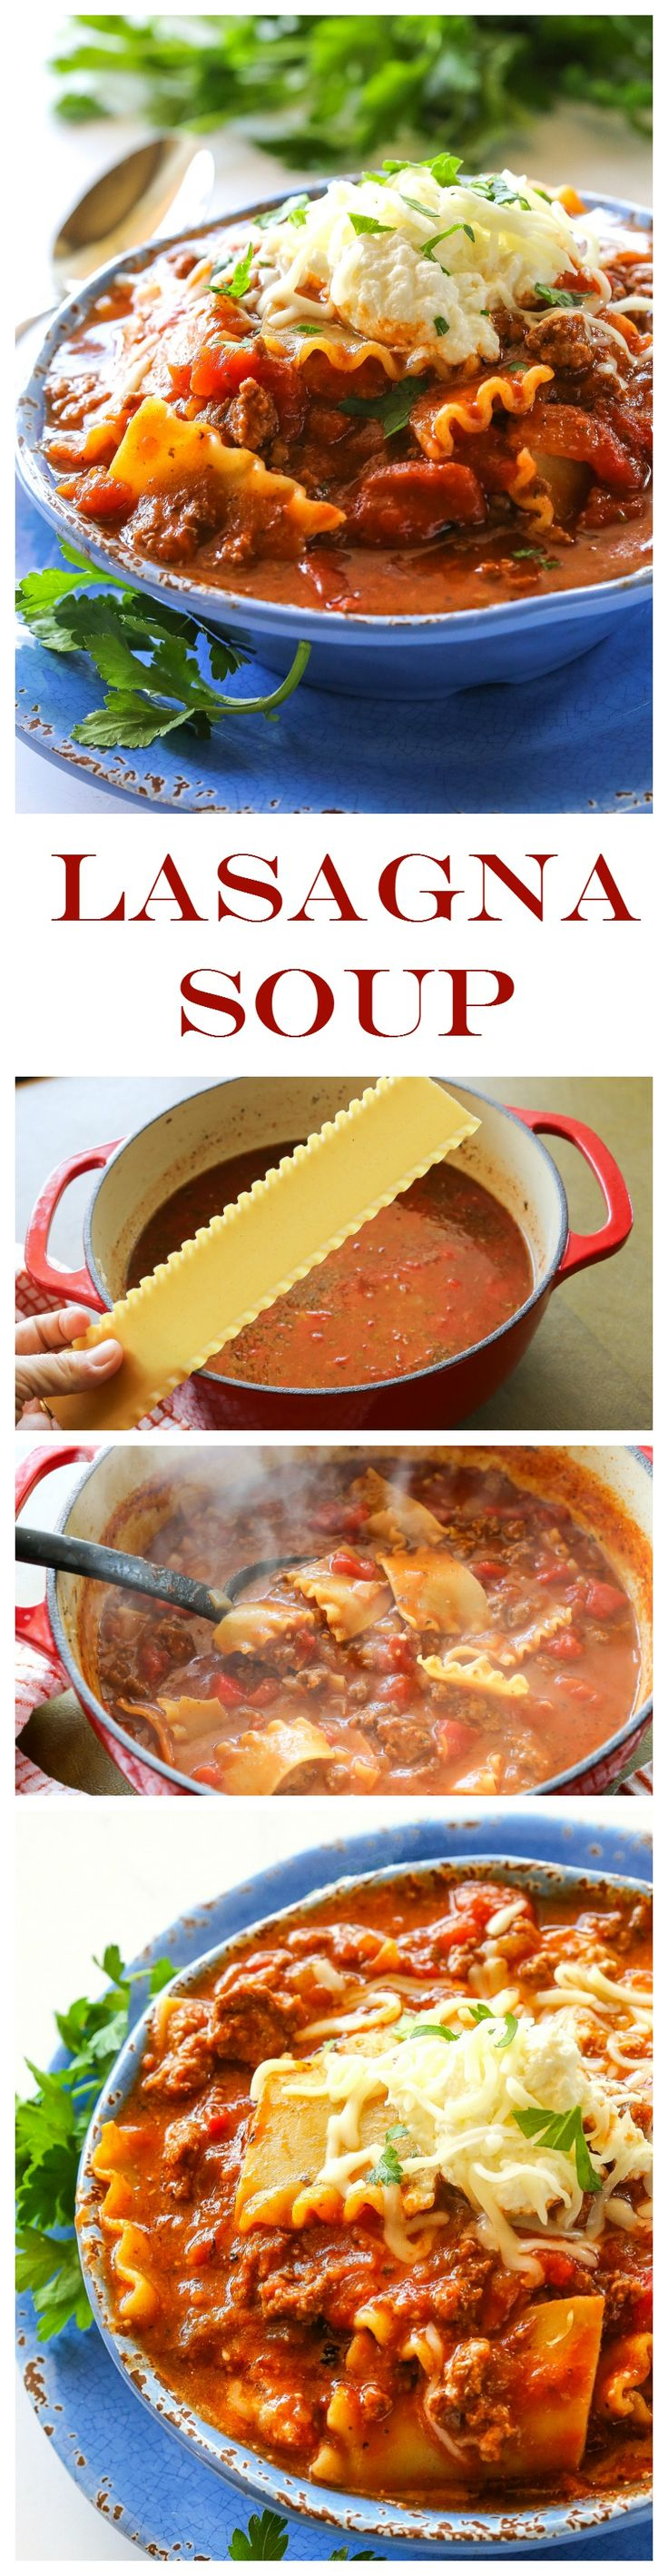 Lasagna Soup - a one-pot dish that taste just like lasagna in a bowl. One of my all-time favorite soups. Only 322 calories a serving. the-girl-who-ate-everything.com